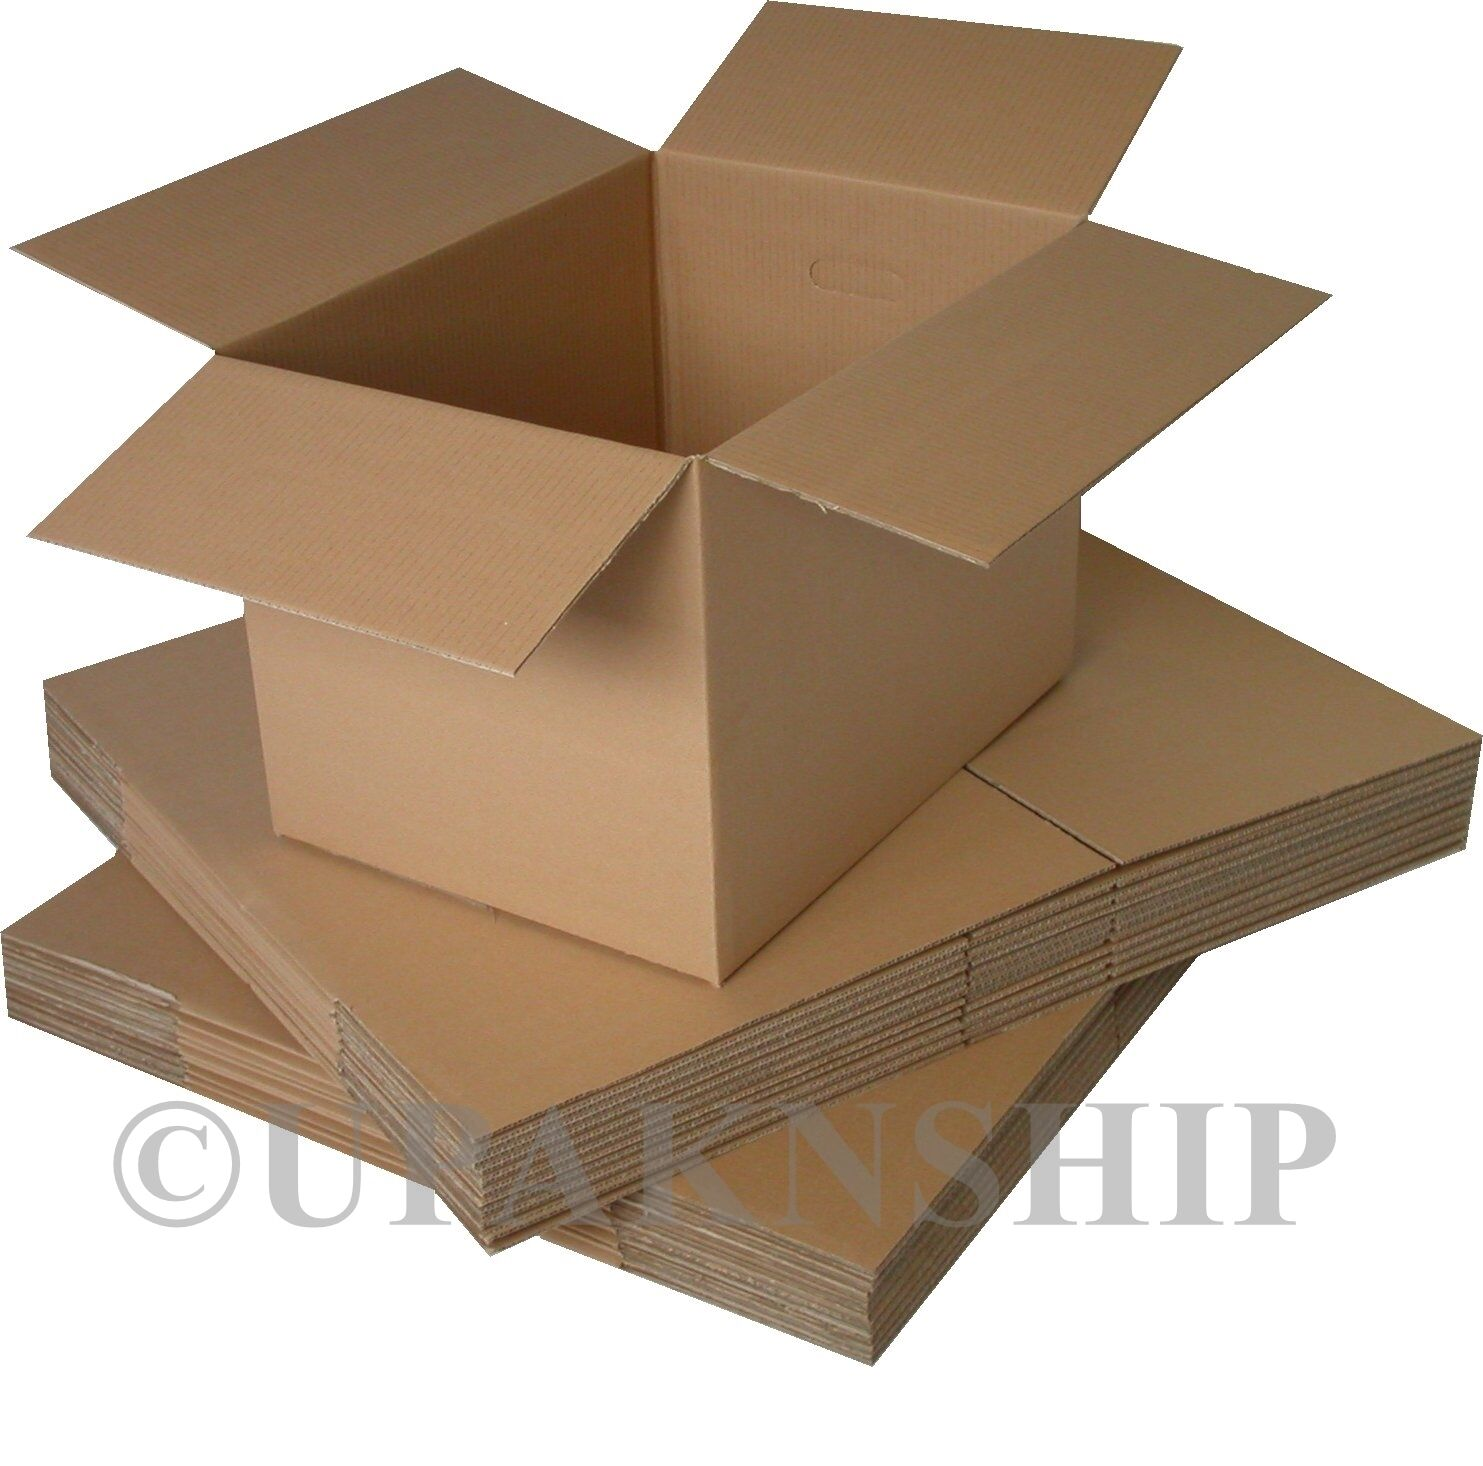 25-6x4x4-Cardboard-Shipping-Boxes-Corrugated-Cartons-W-EXPEDITED-SHIPPING